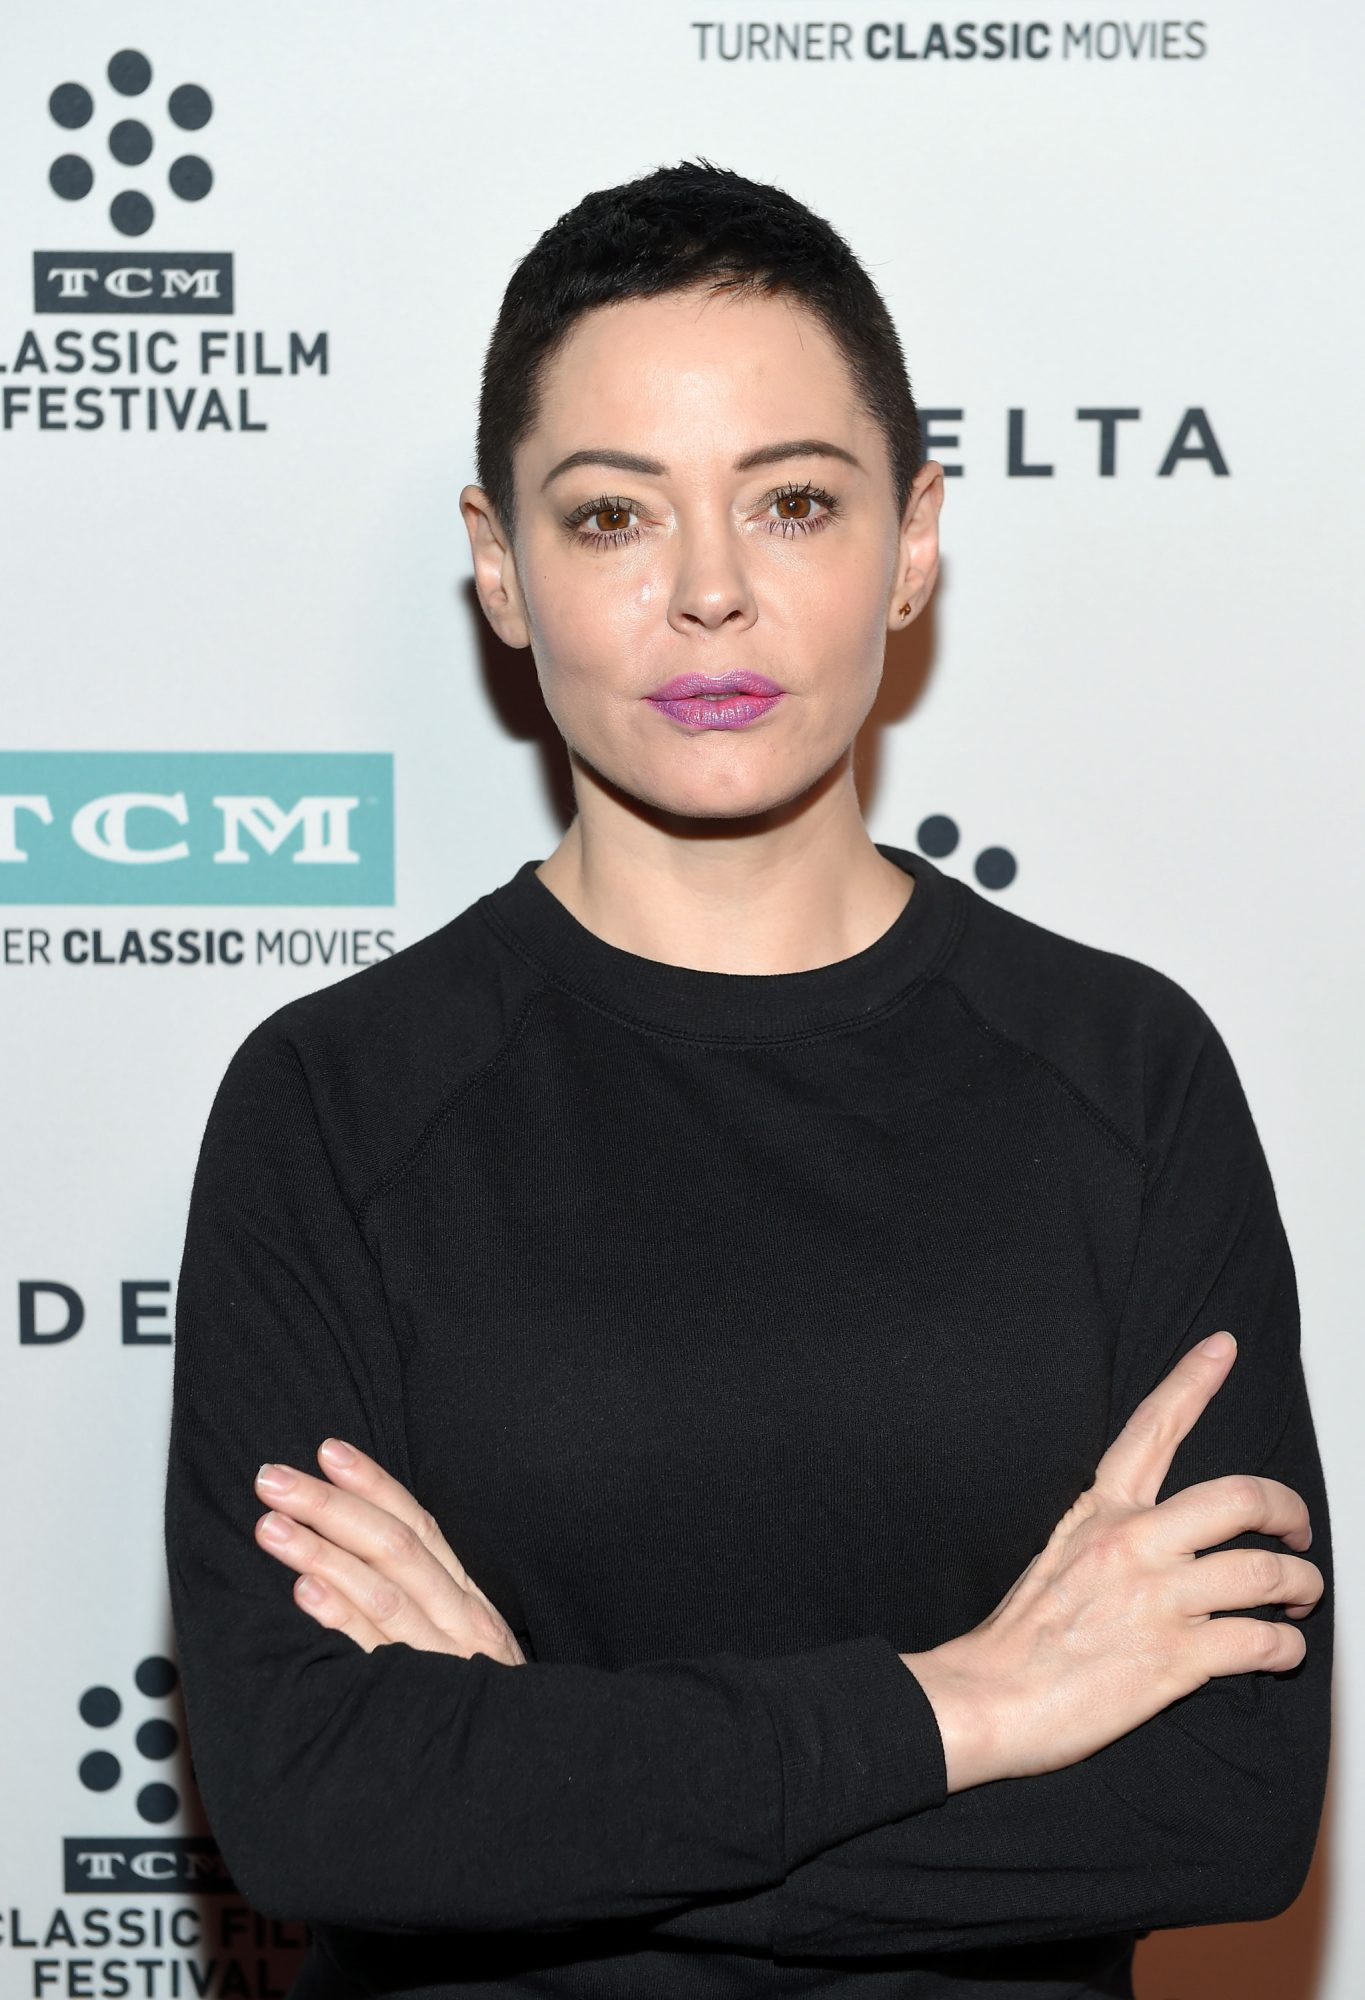 Rose McGowan Speaks Out Against Stars Wearing Black at the Golden Globes